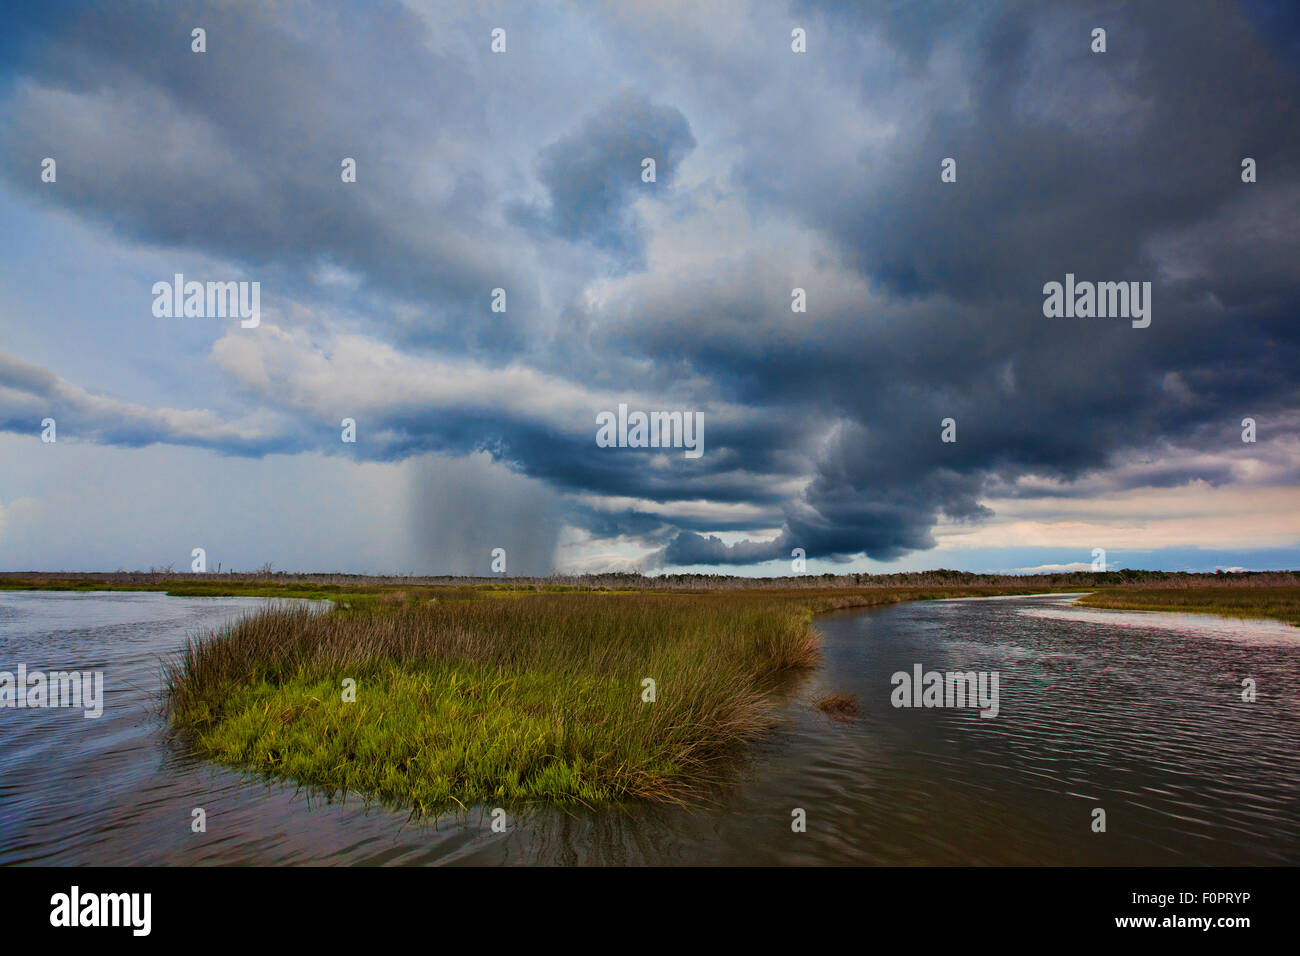 Afternoon storm clouds moving over the Central Florida Coastline along the Gulf of Mexico with rain falling Stock Photo